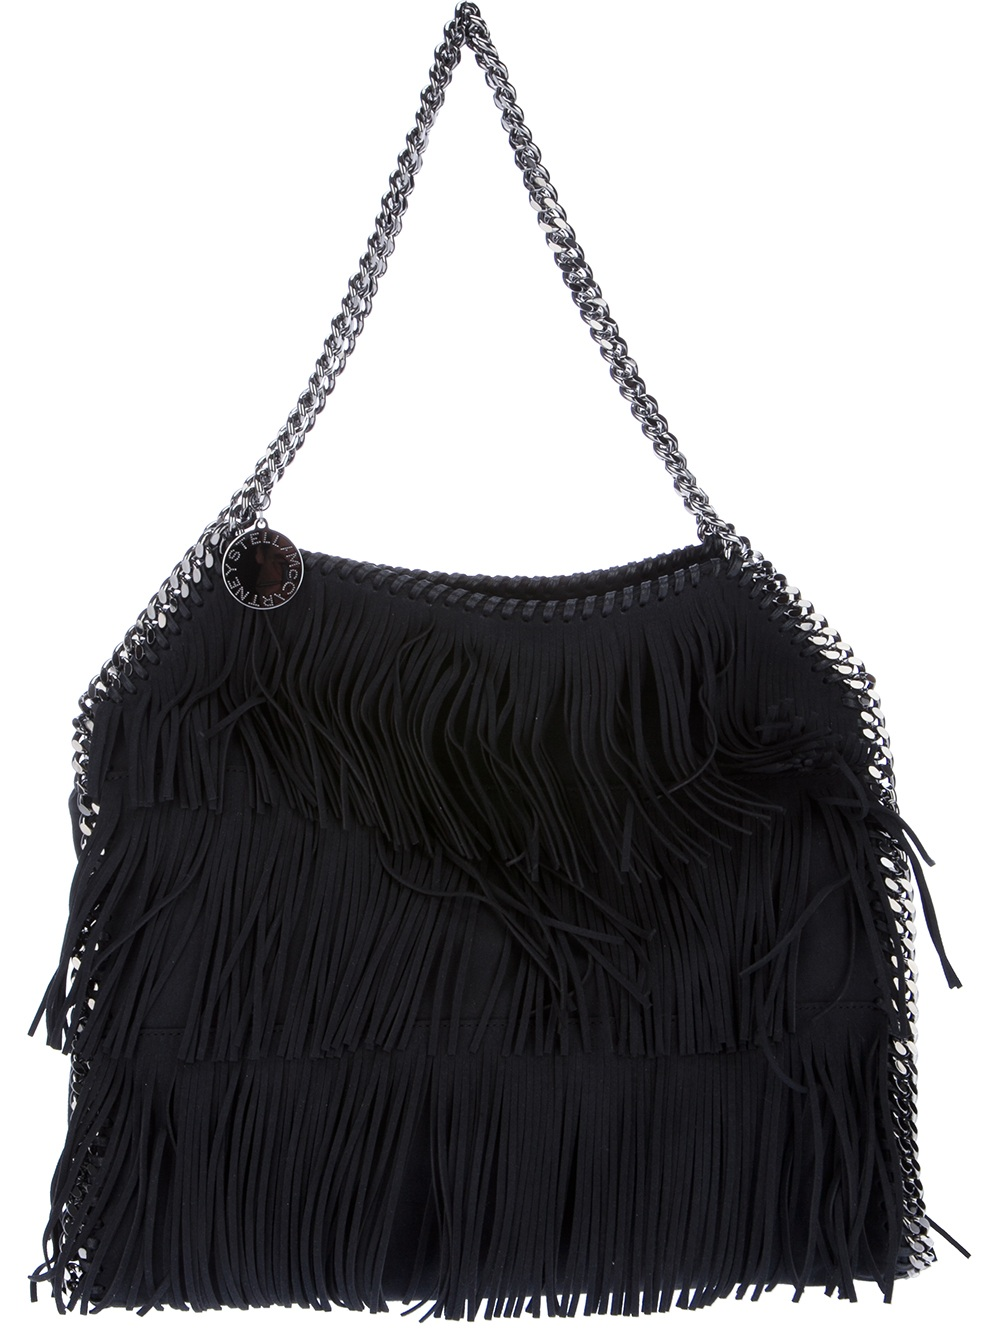 9b4fe277d856 Previously sold at Farfetch · Womens Fringed Bags Womens  get cheap 27127  2f1d8 Stella Mccartney - Mini ...